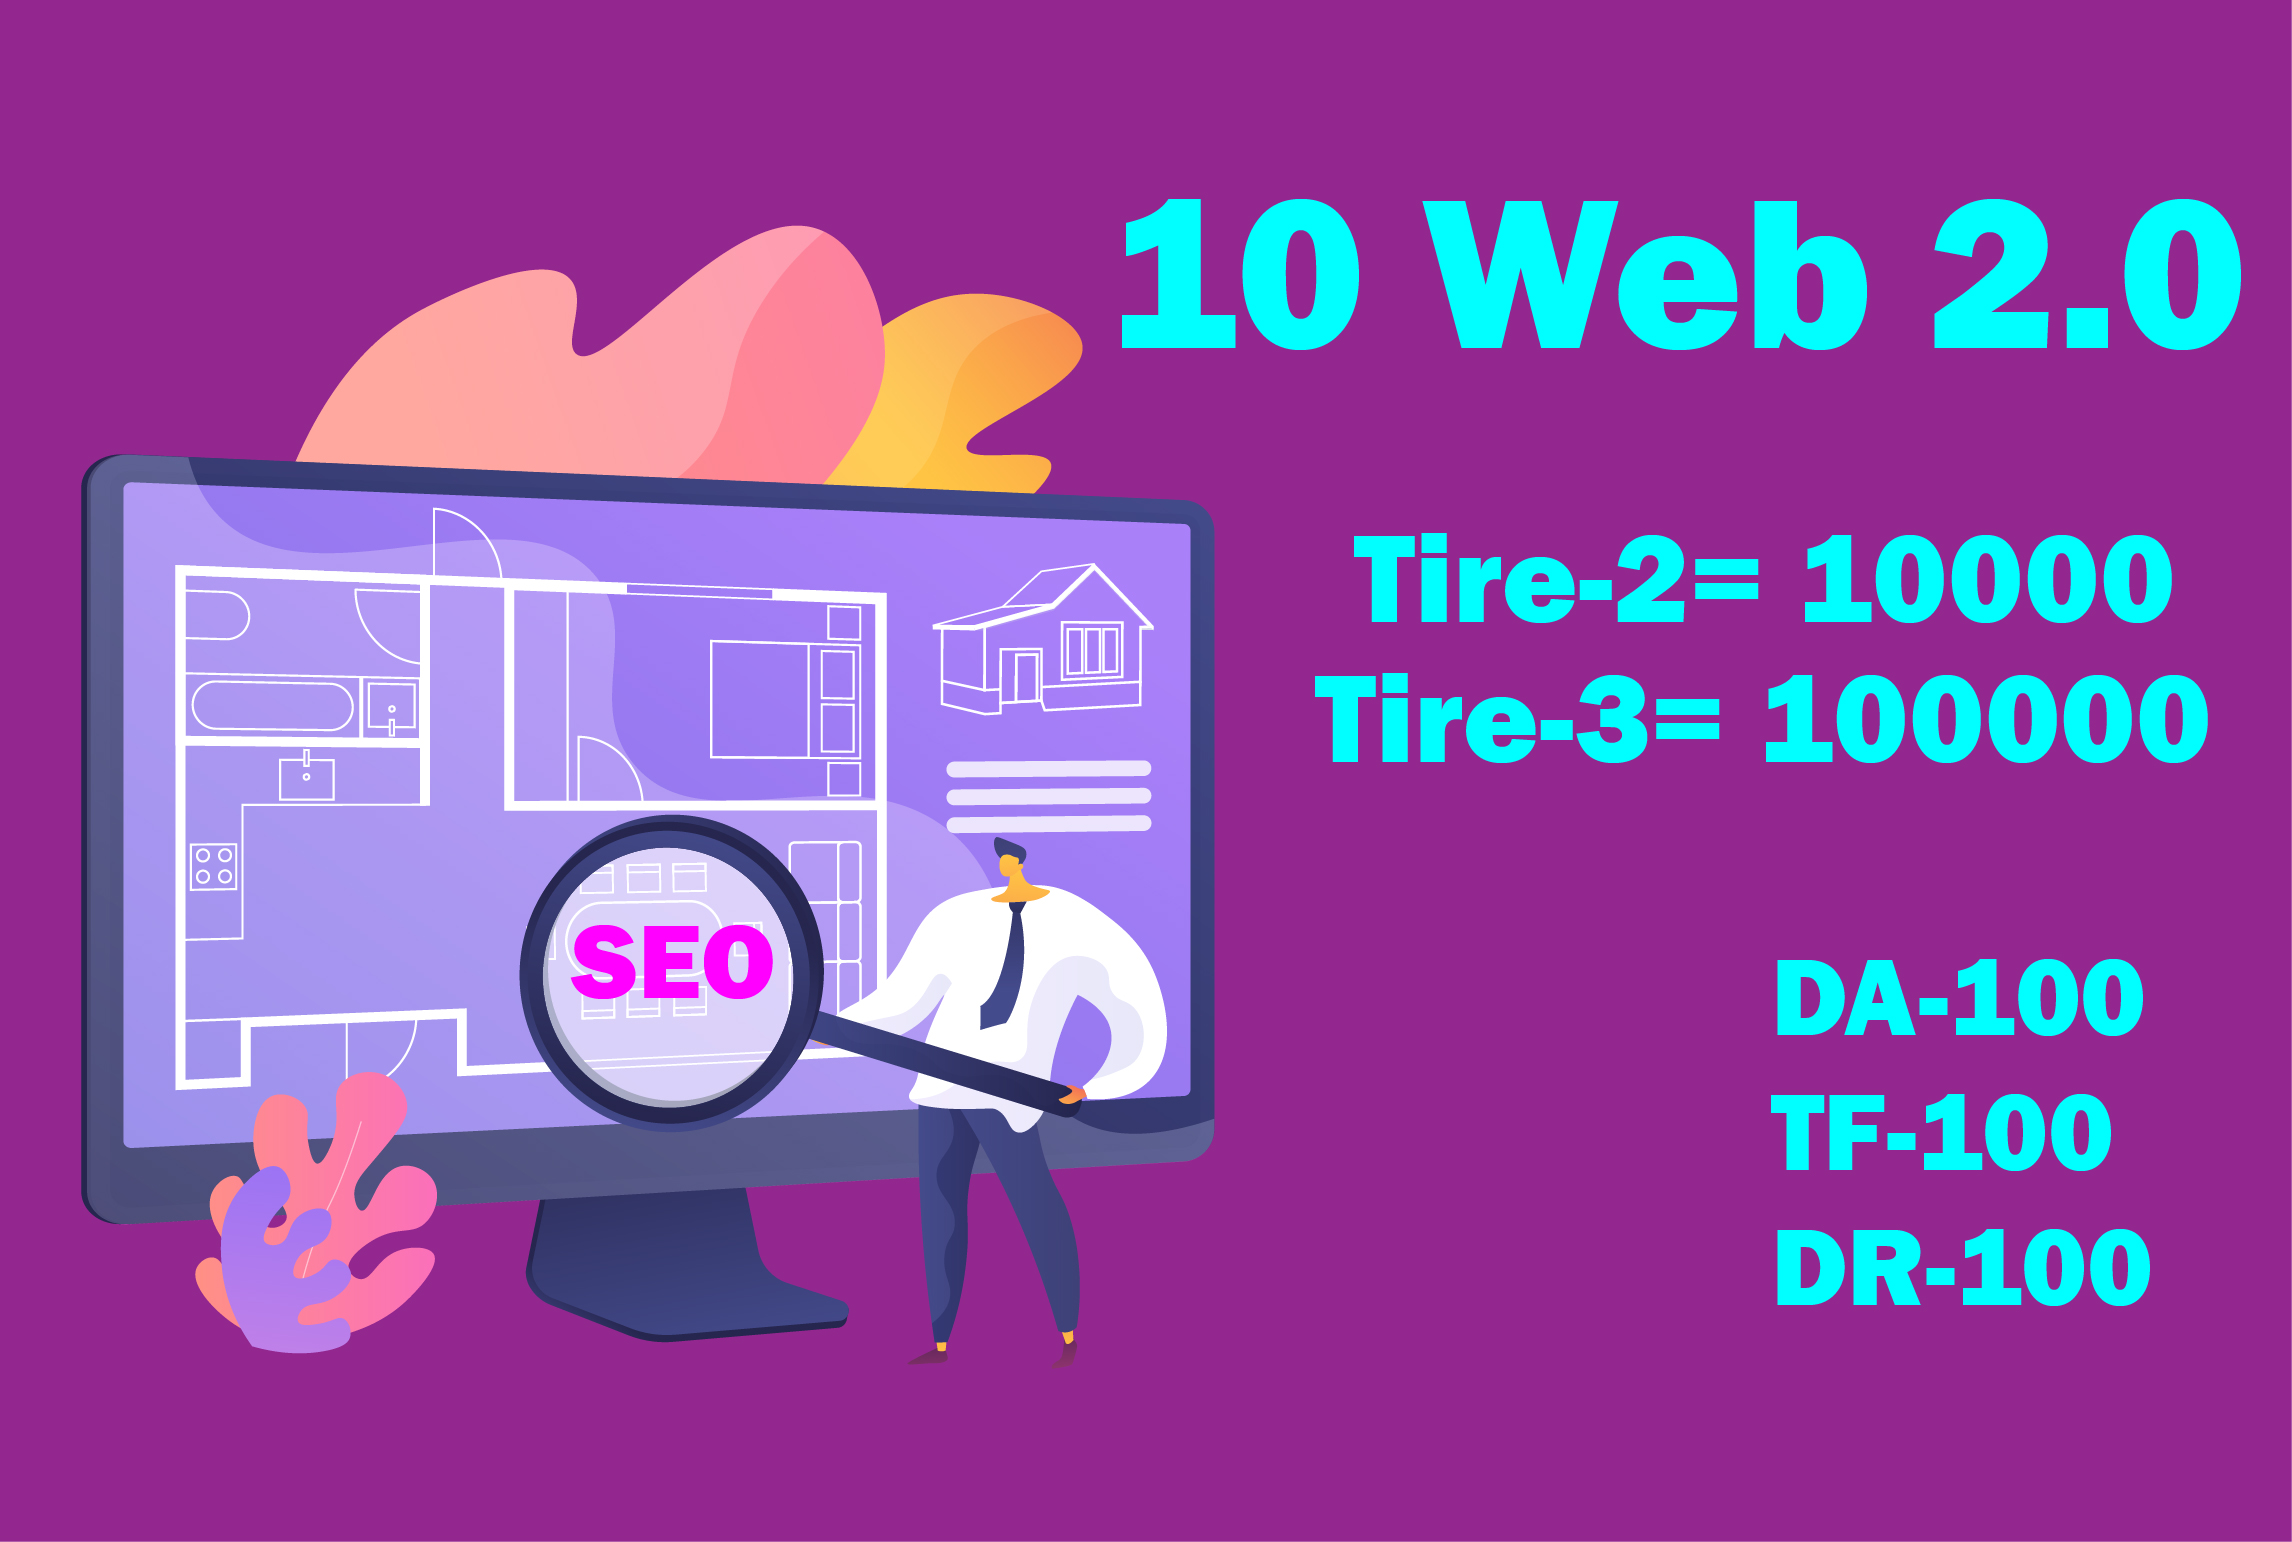 Build 10 Web 2.0 And 10000 Tire2 Backlink and 100000 Tire3 Backlink